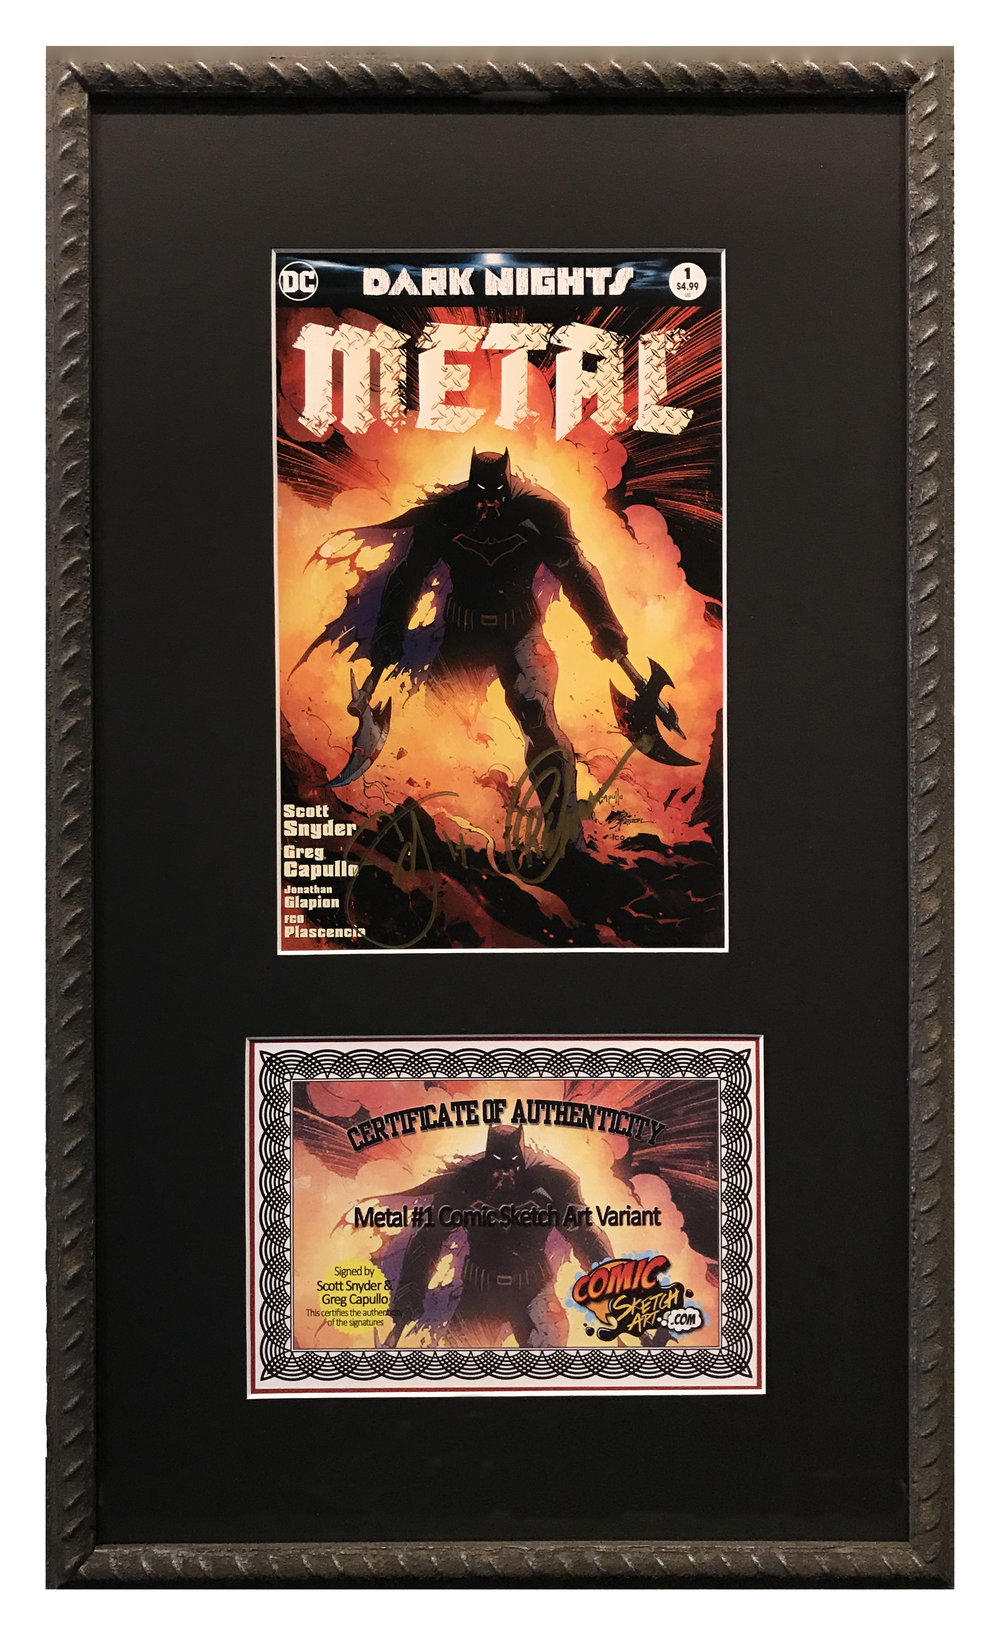 Collectable Comic Book and Certificate1123.jpg